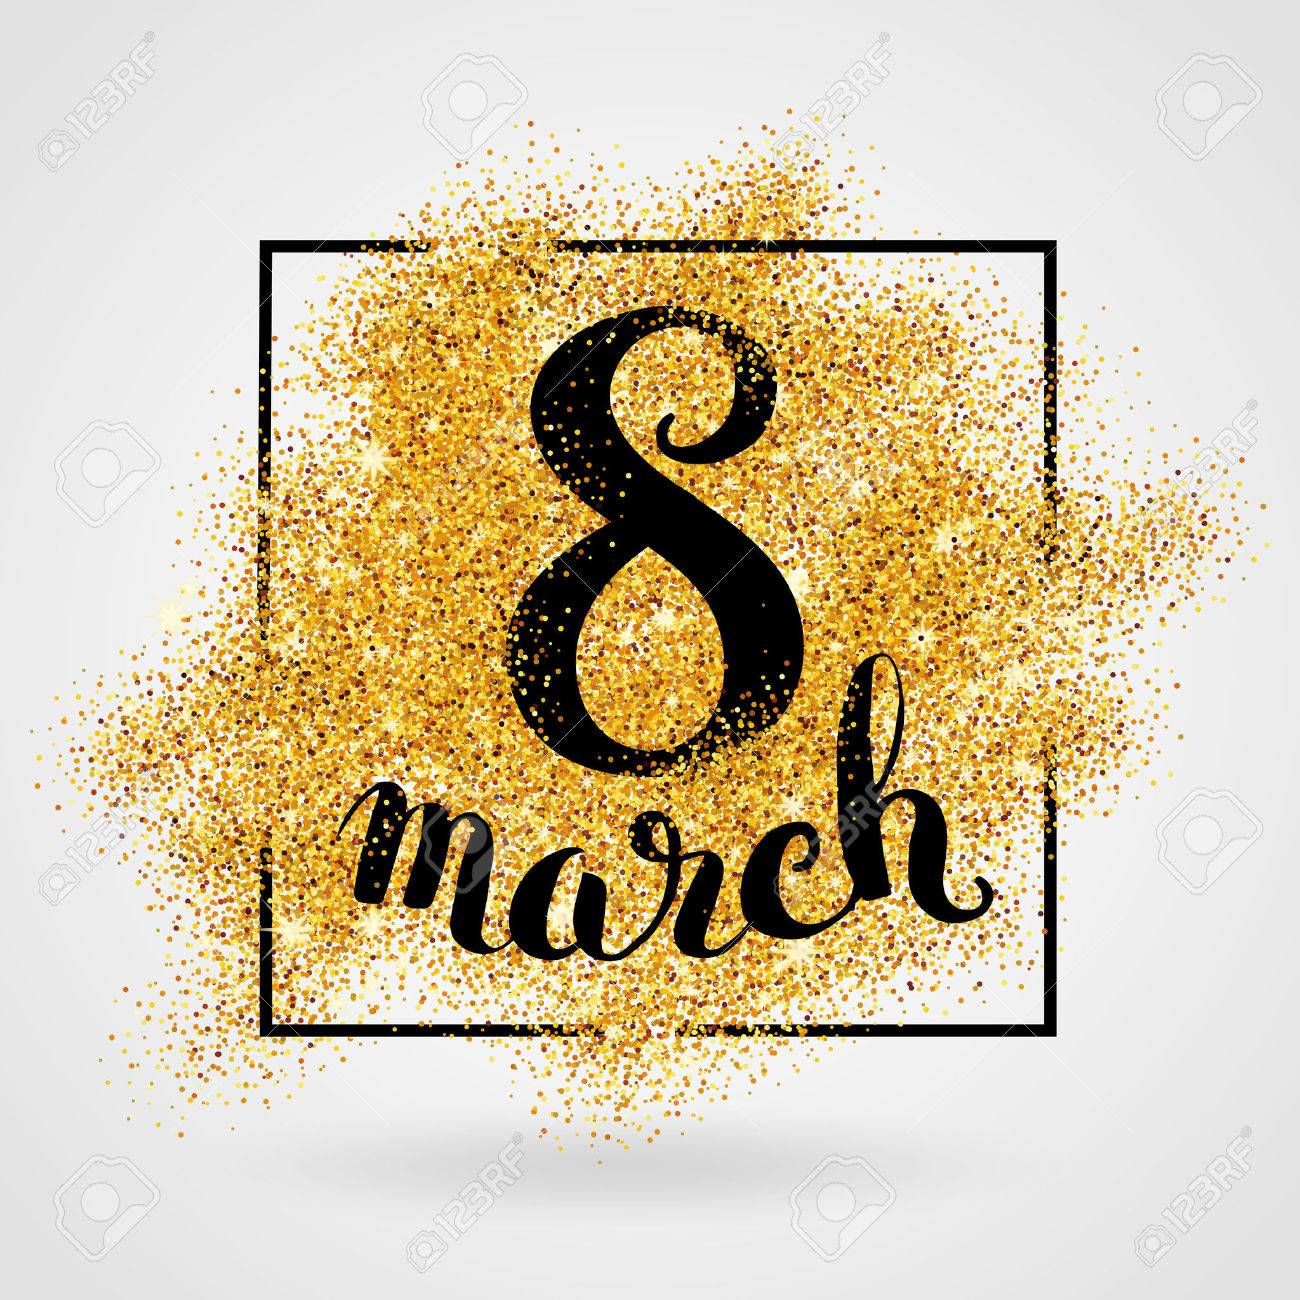 8 march women's day. Gold glitter. Gold background for poster, sign, banner, web, header. Abstract golden background for eighth march. Gold blur background. - 52533029